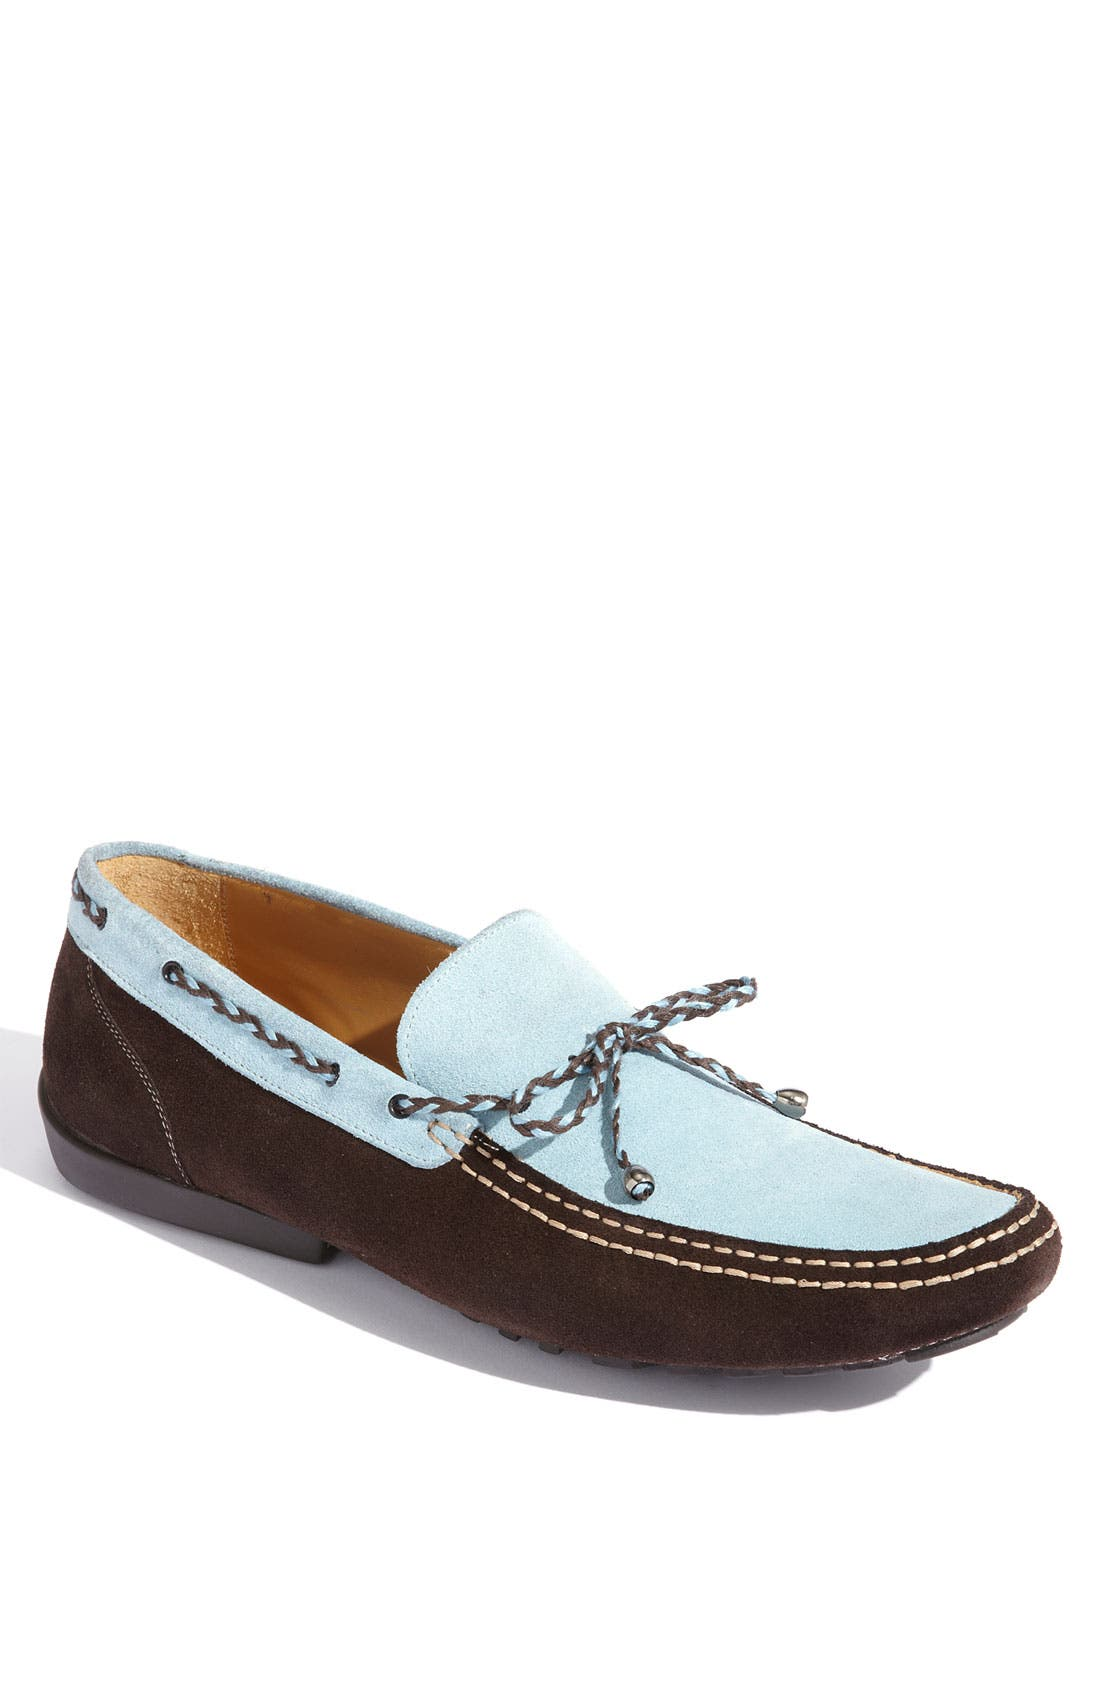 Main Image - Mezlan 'Palermo' Slip-On